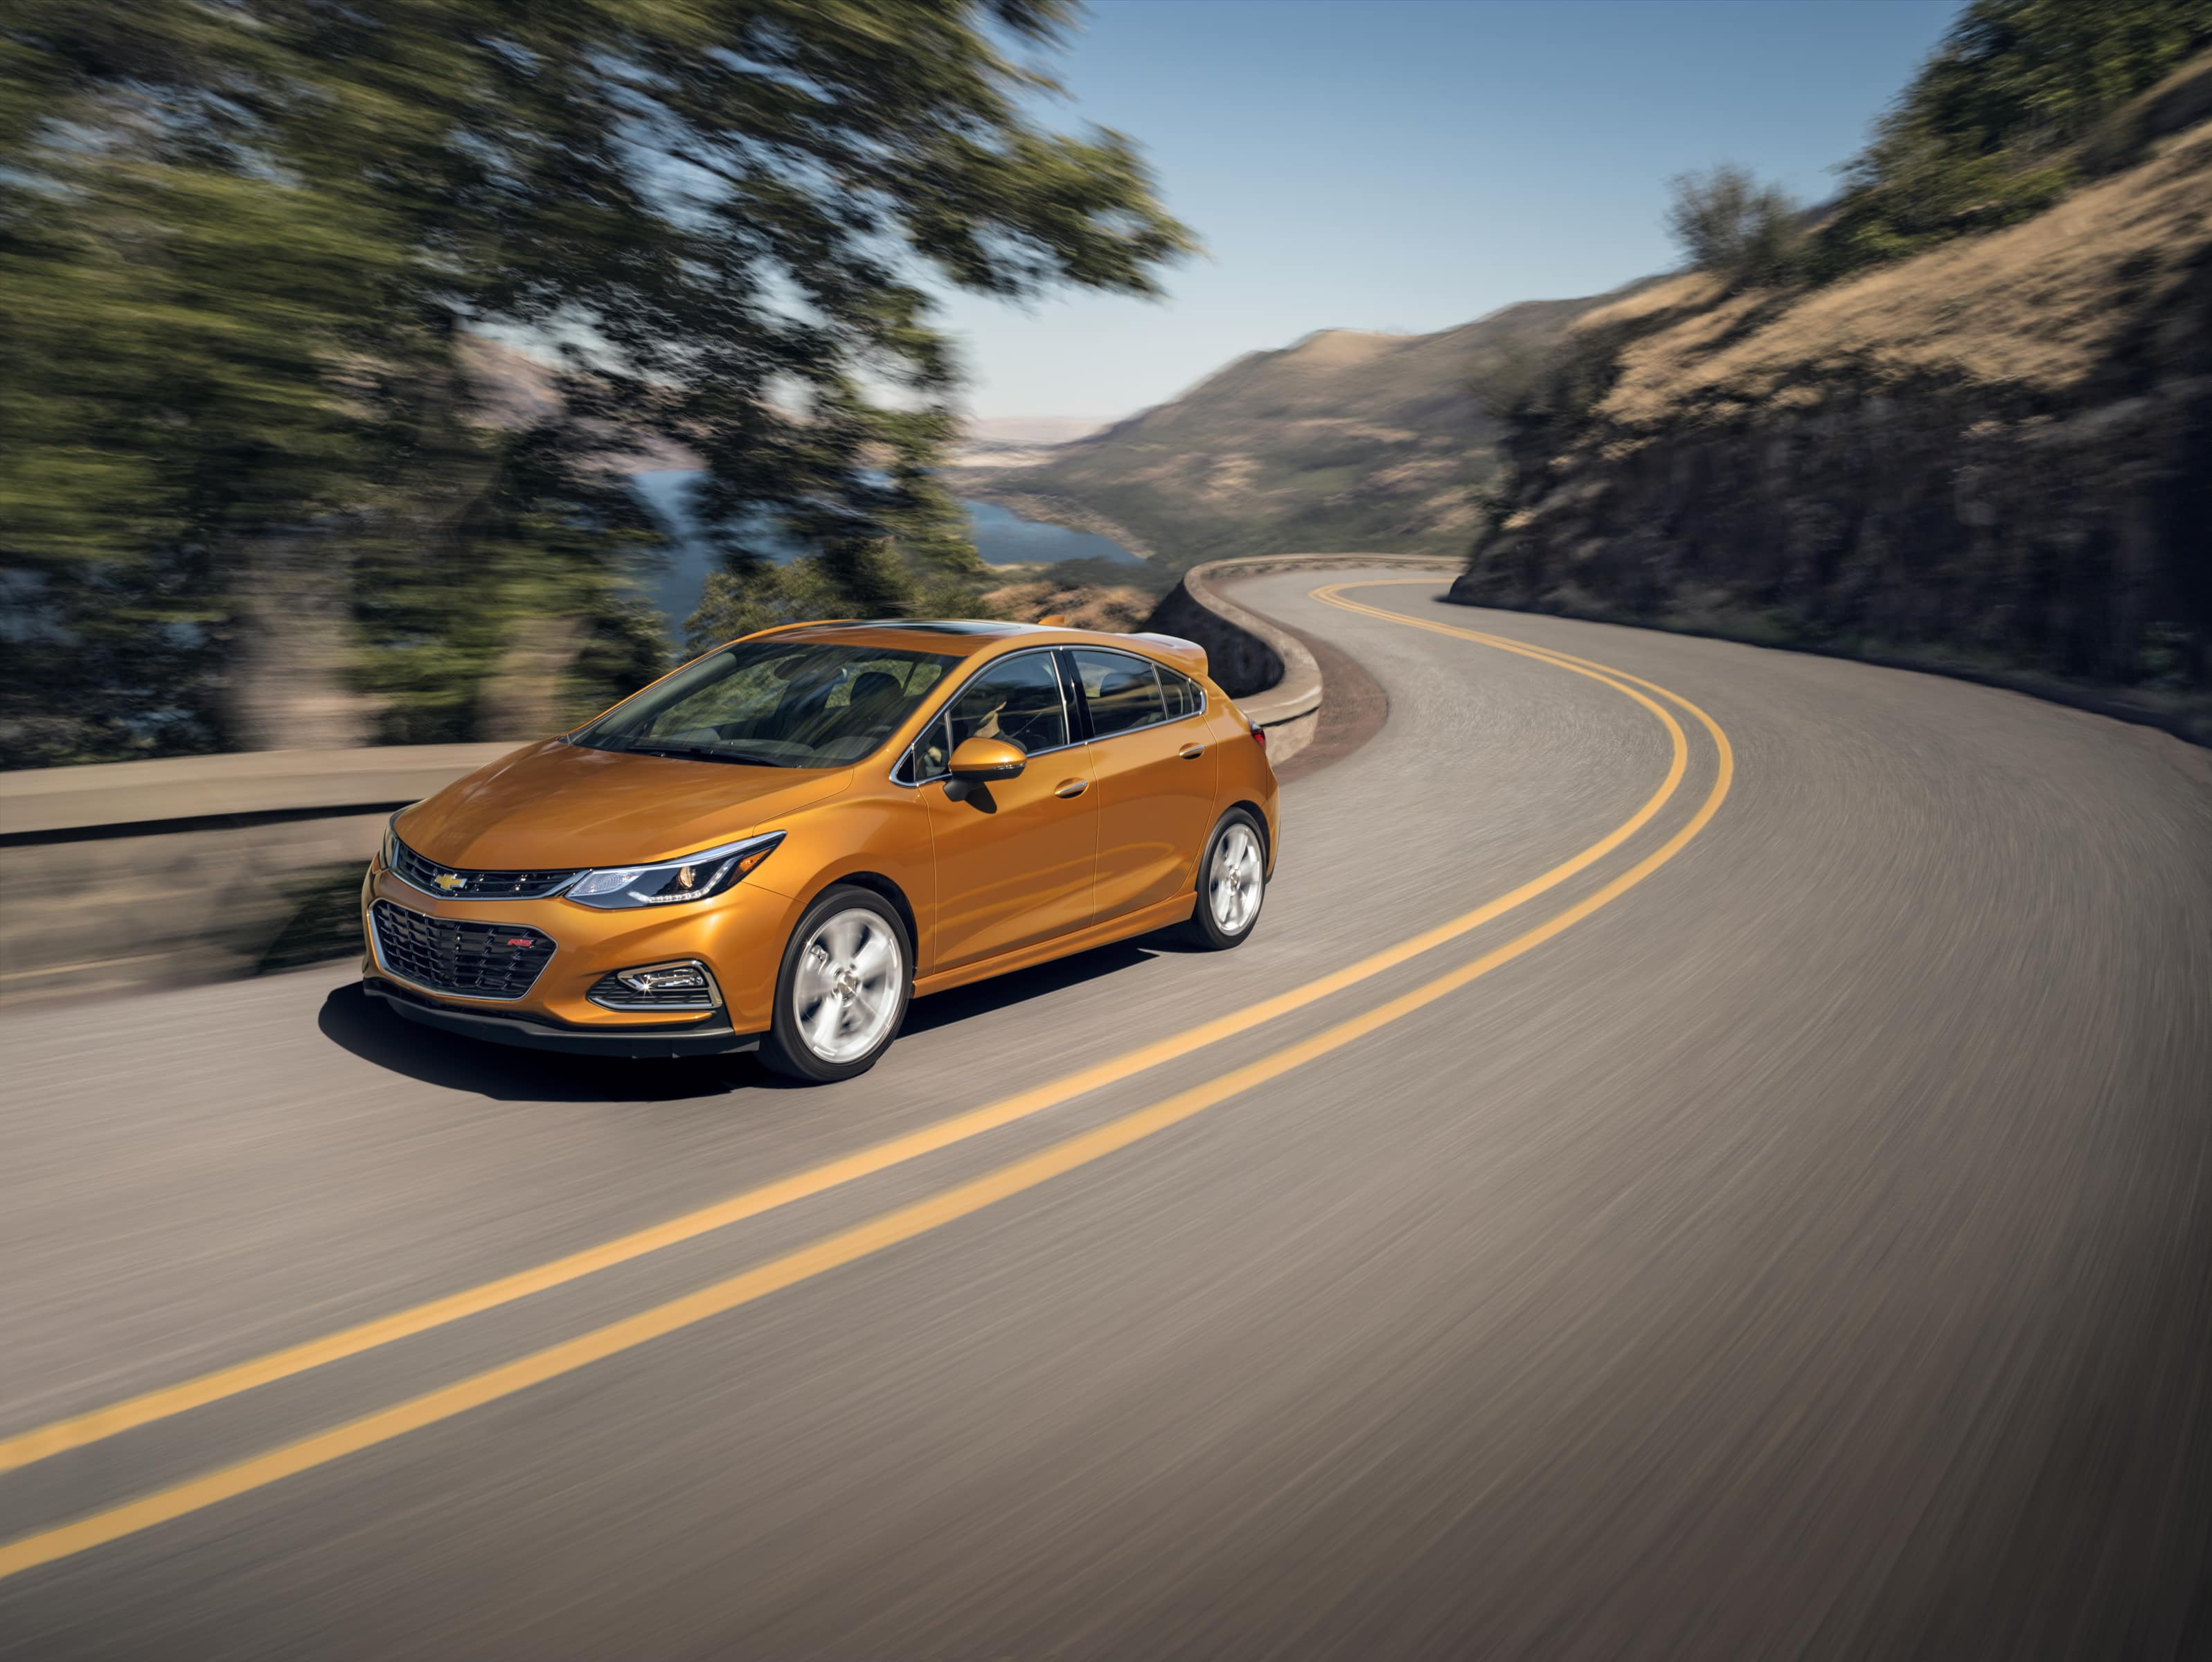 2018 Chevrolet Cruze Hatch Chicago IL